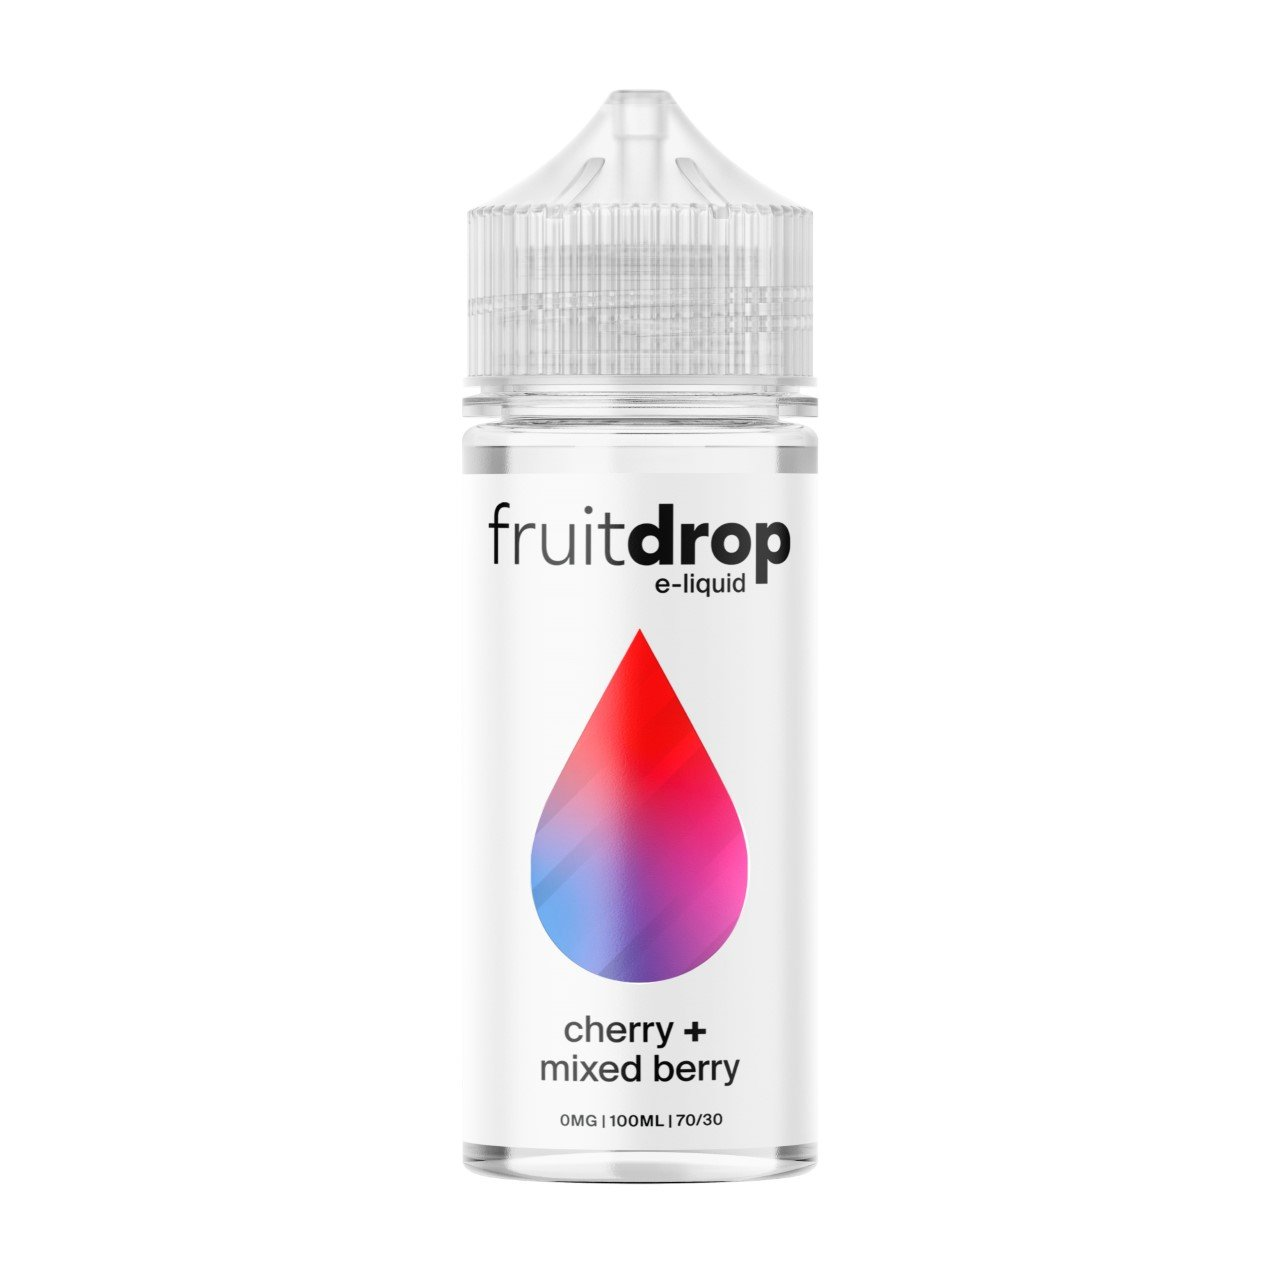 Fruit_Drop_100ml_Bottle_Mockup_Cherry_Mixed_Berry